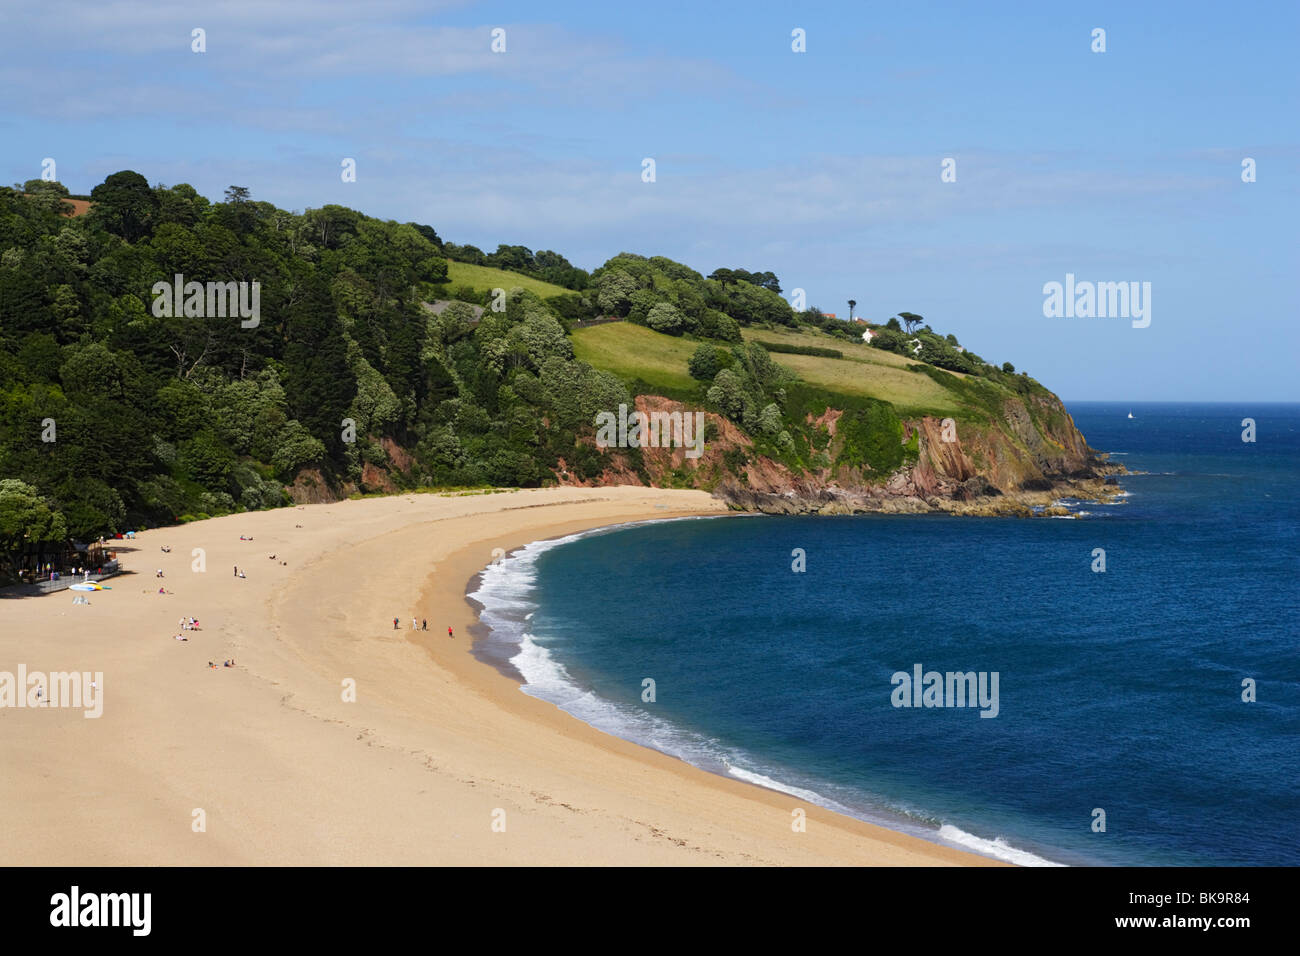 View over Blackpool Sands, Devon, England, United Kingdom - Stock Image